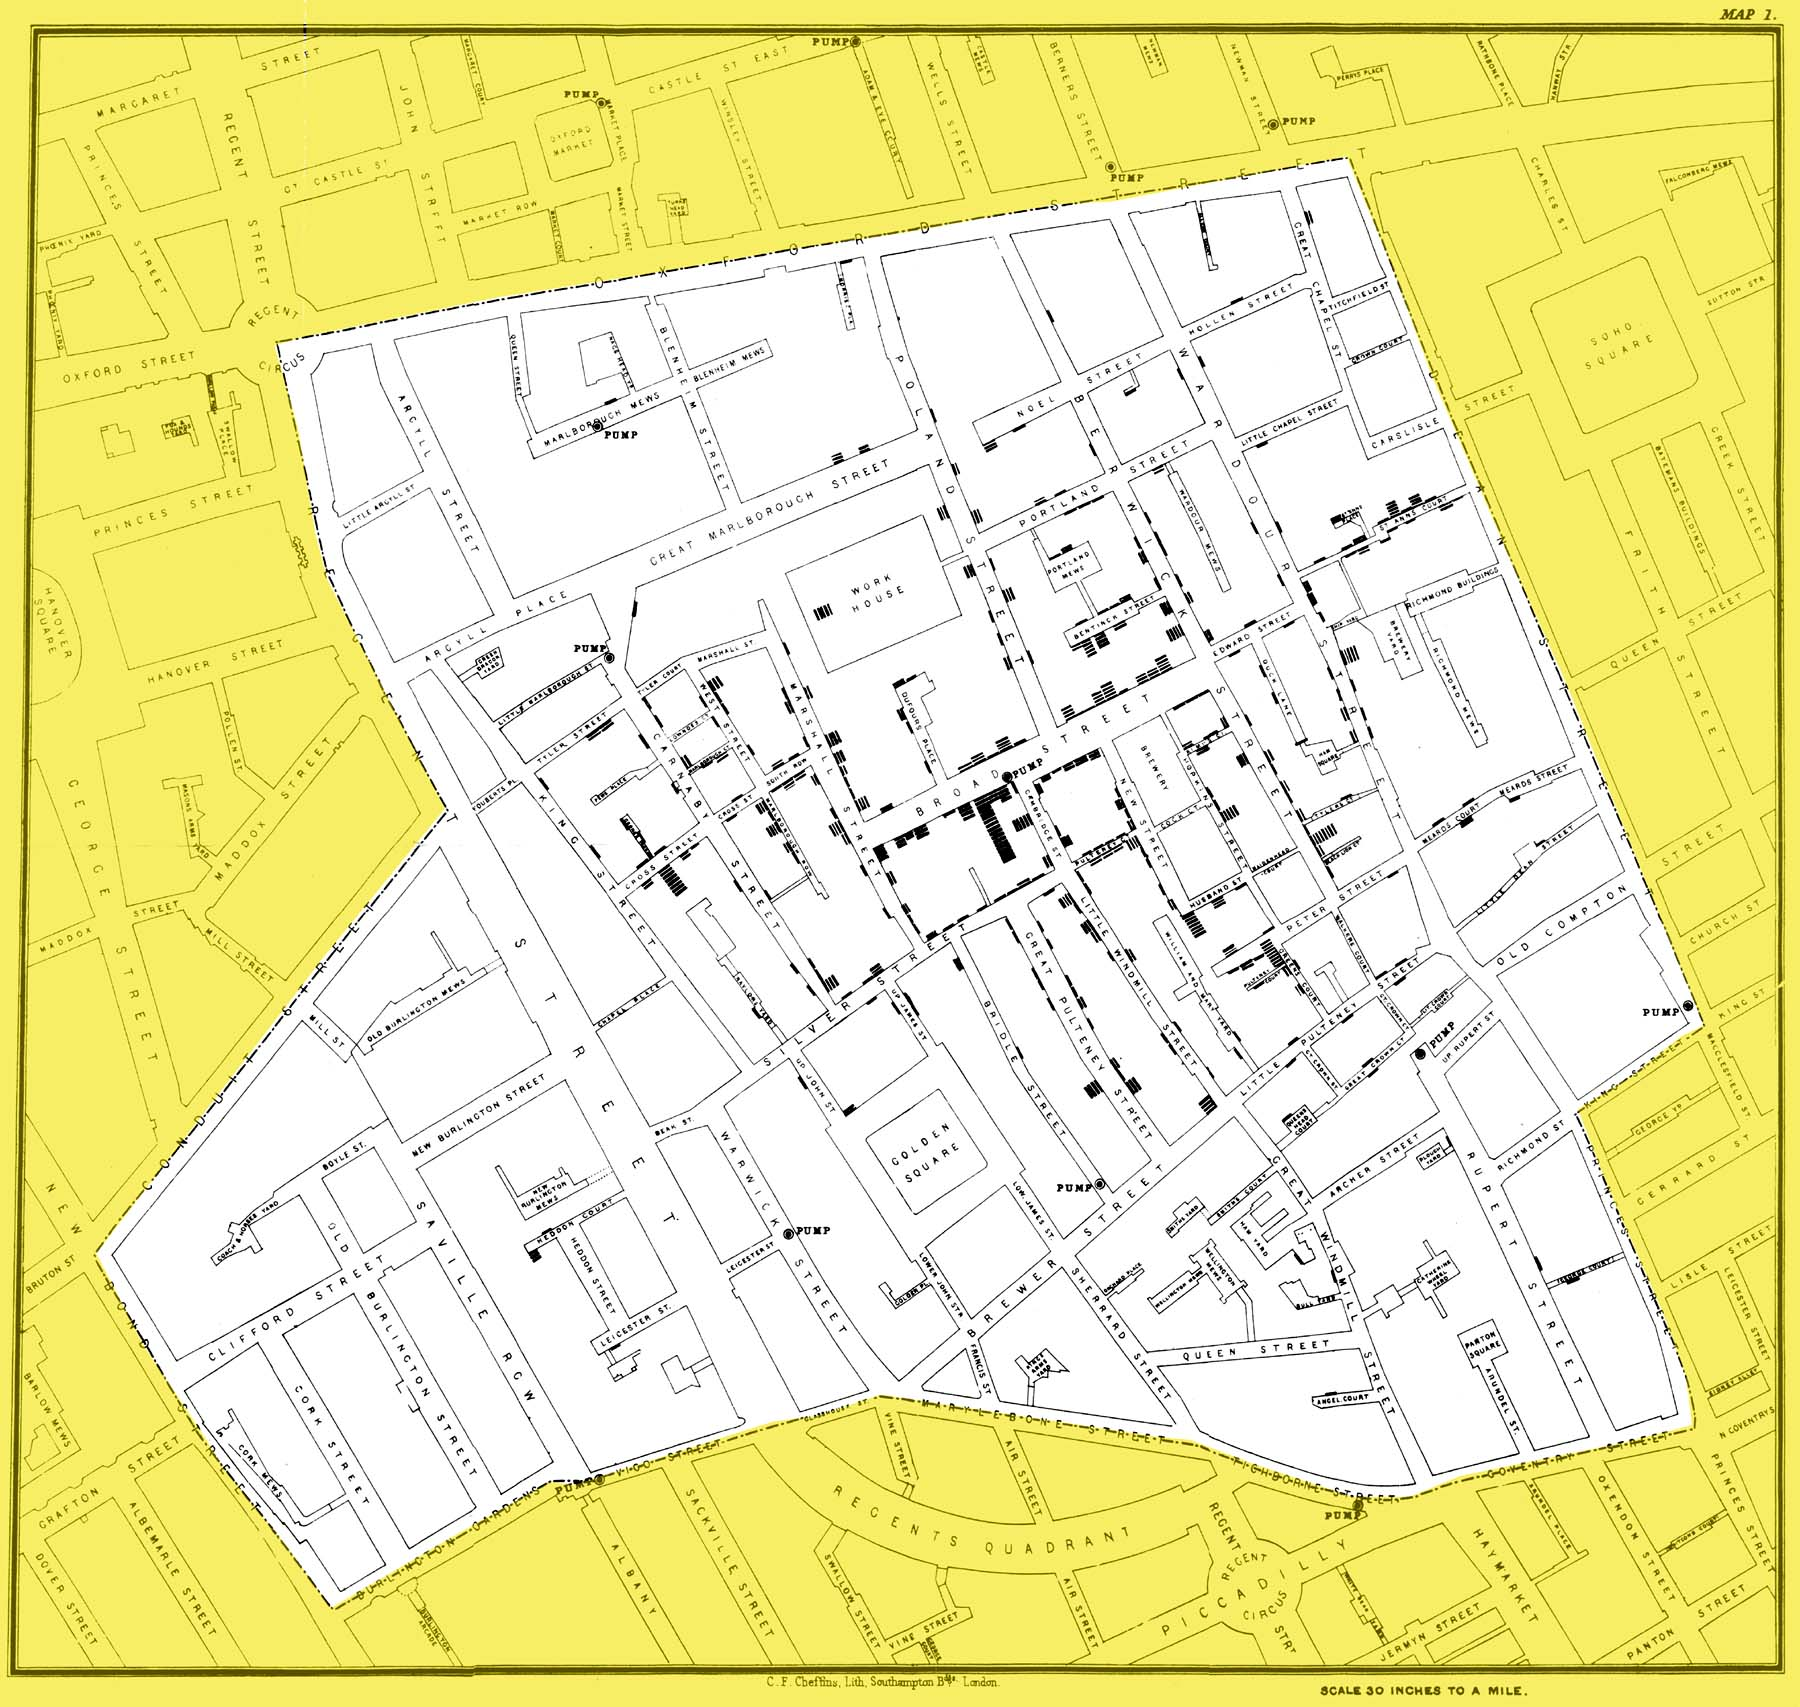 John Snow Cholera map (1854)